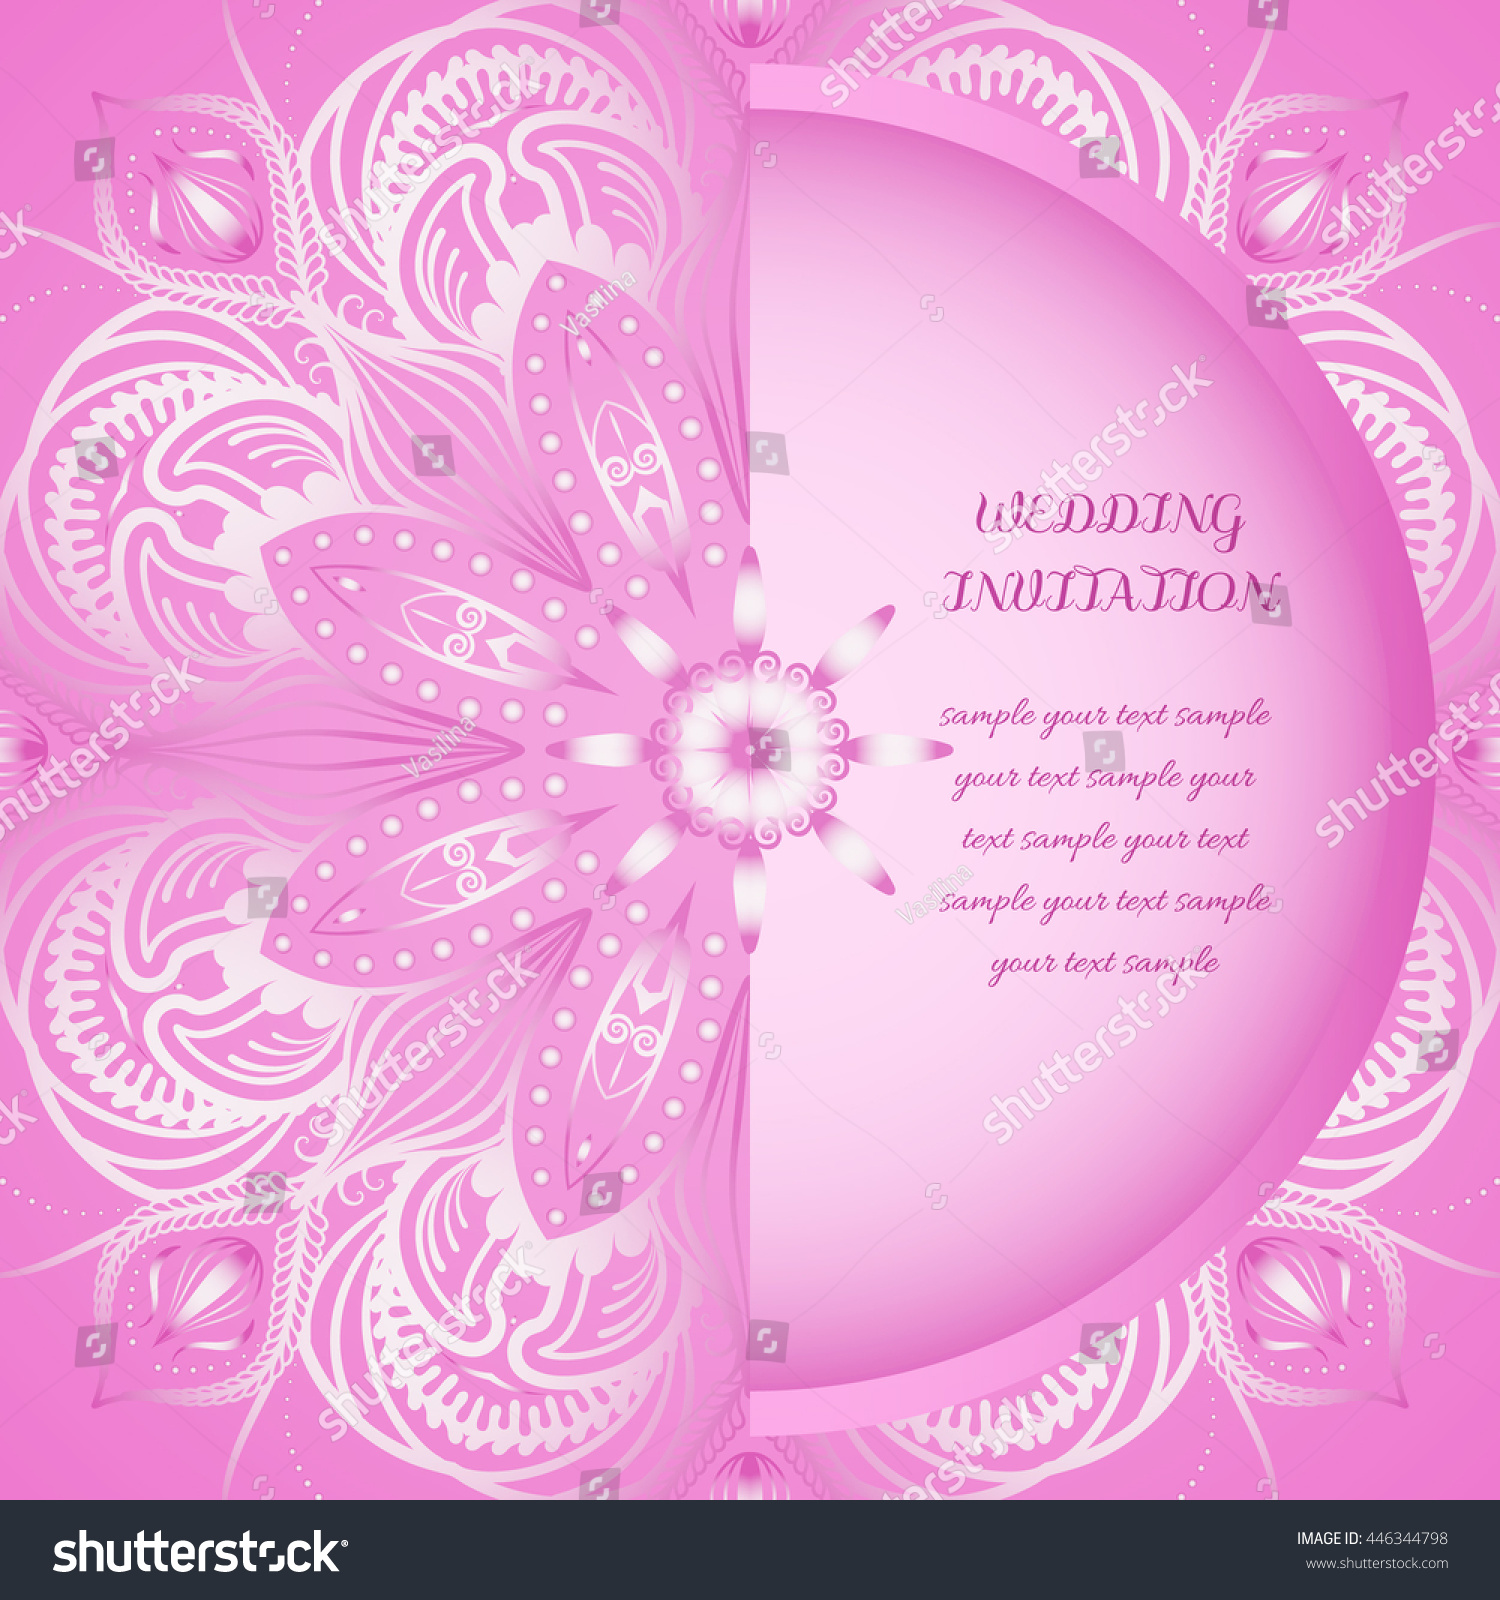 Wedding card invitation round ornamental pattern stock vector wedding card or invitation round ornamental pattern eps 10 contains transparency stopboris Images